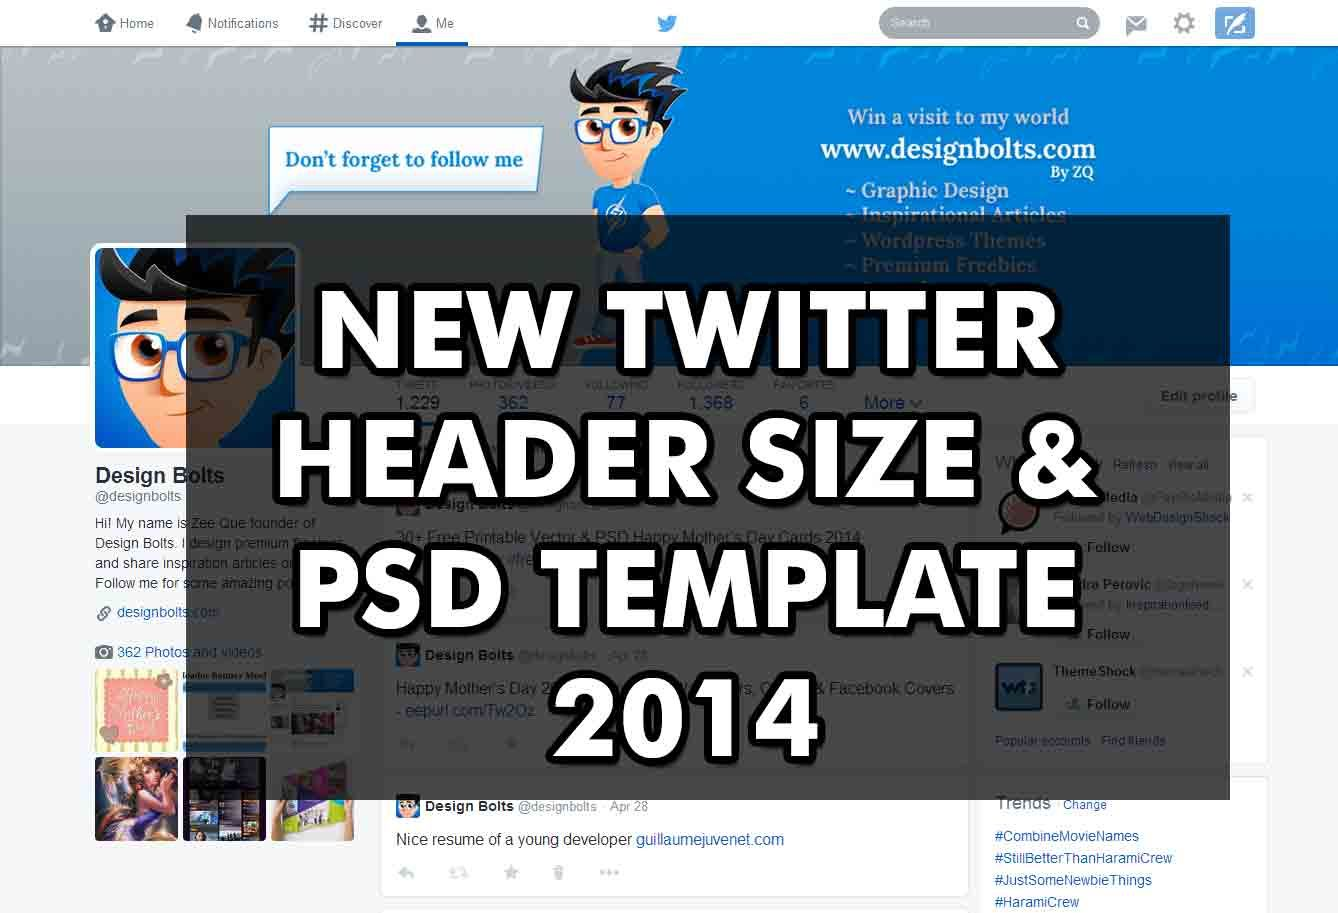 New Twitter Header Banner Size Free Psd Mockup Template 2014 Header Banner Mockup Free Psd Free Psd Mockups Templates